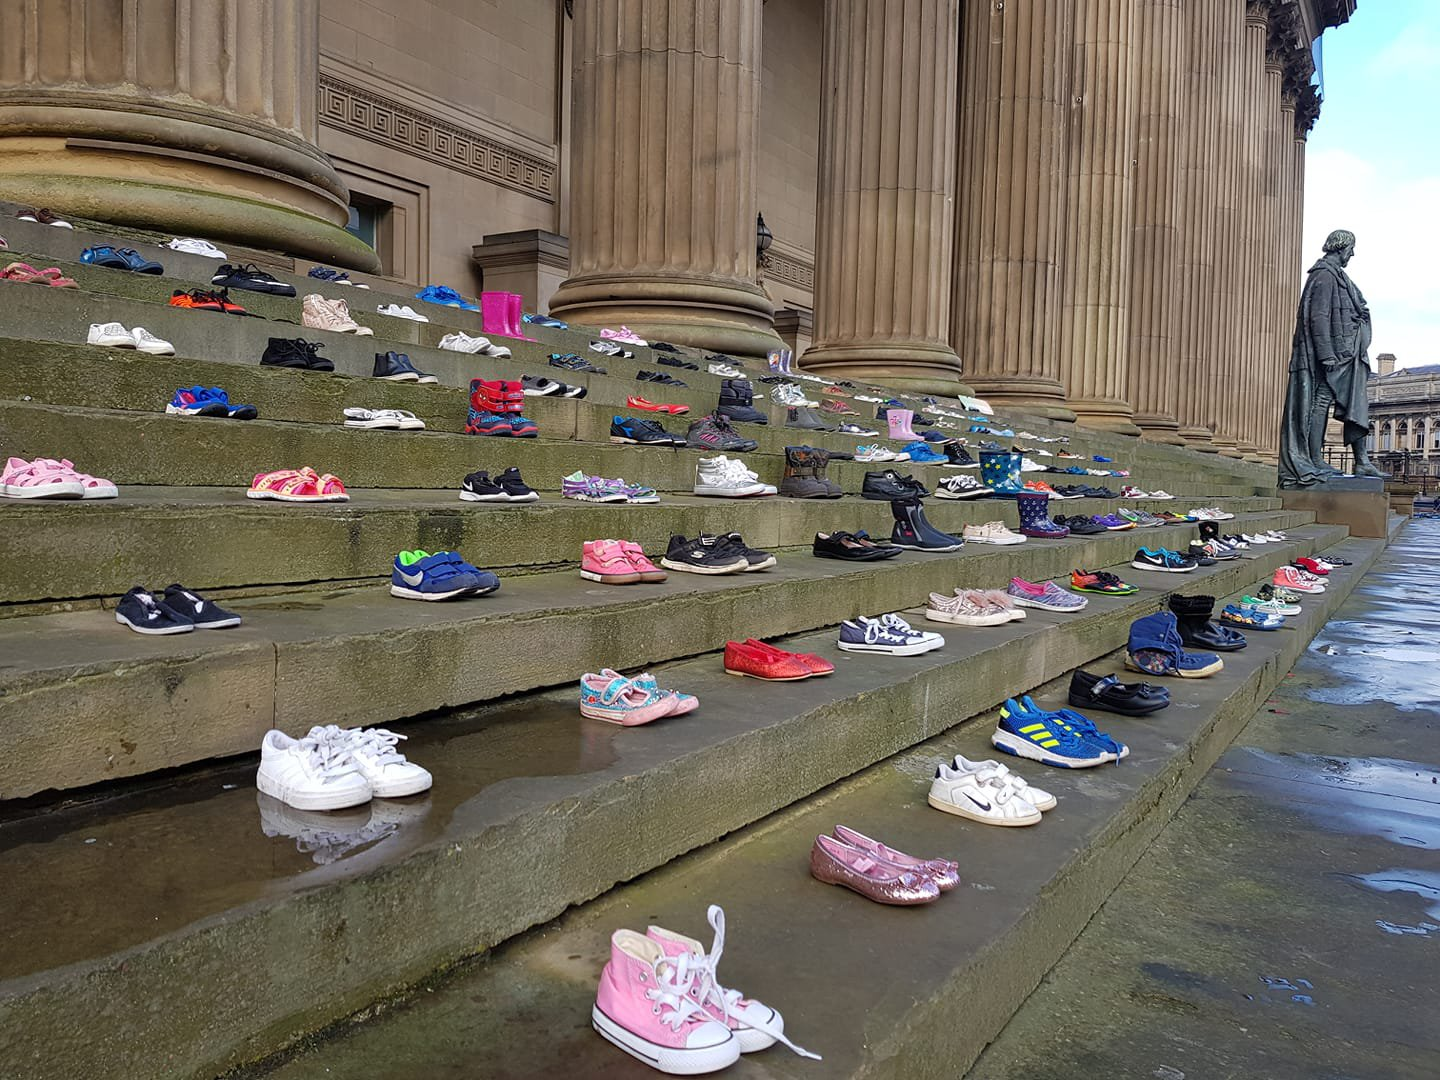 Charity places 226 pairs of shoes on steps to represent every child lost to suicide